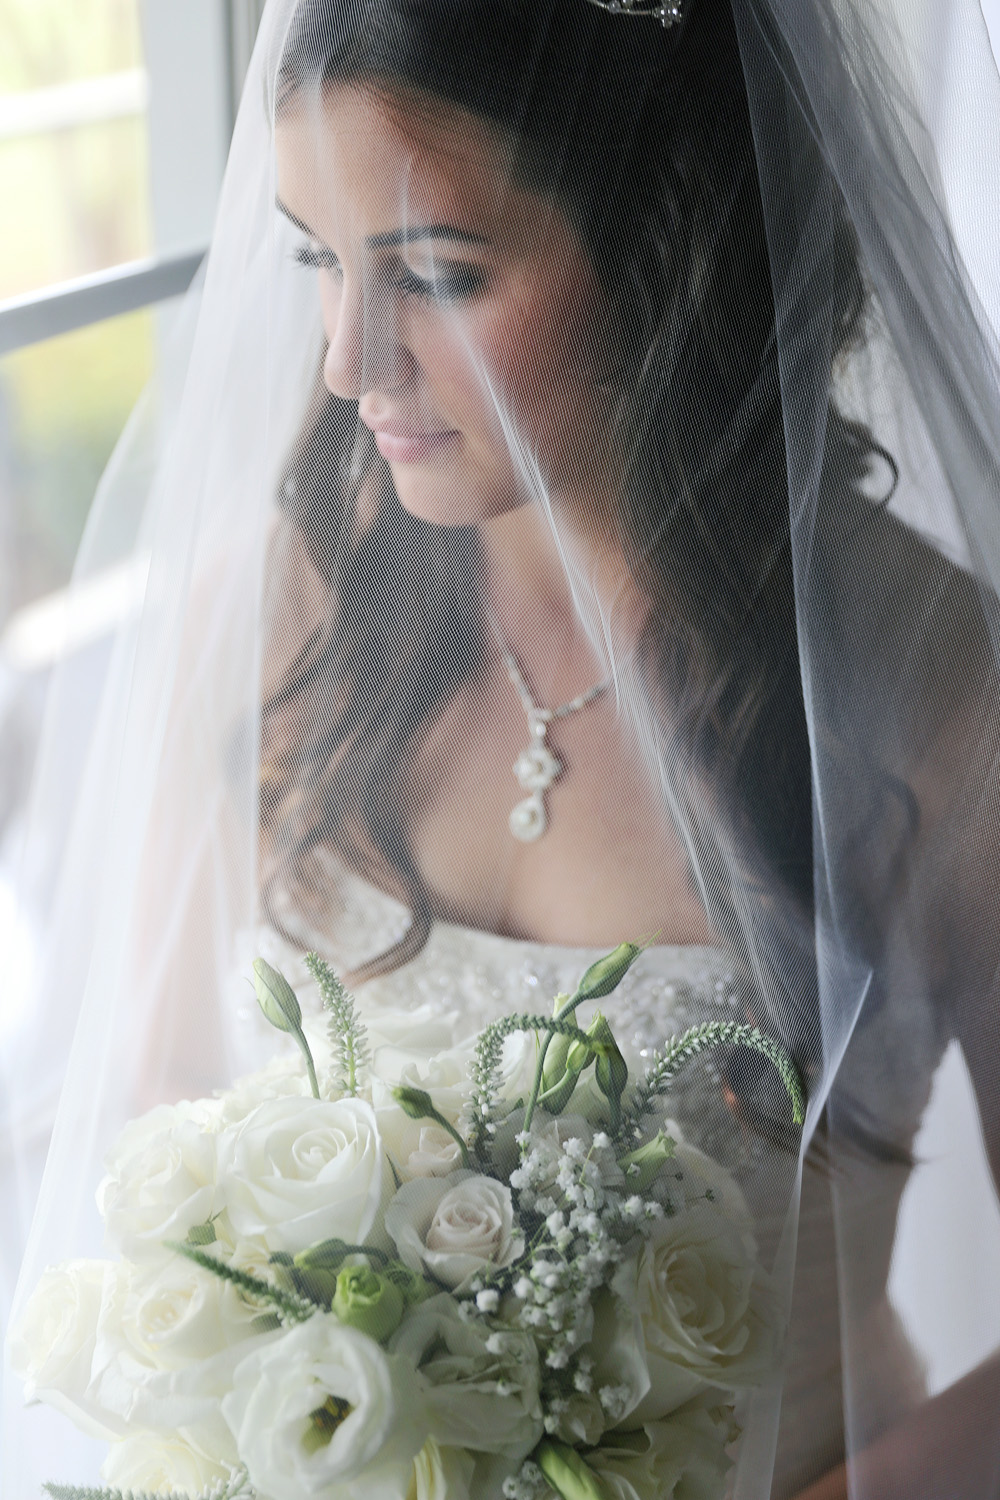 St_James_Plantation_Wedding_Tiffany_Abruzzo_Photography_blog236.jpg